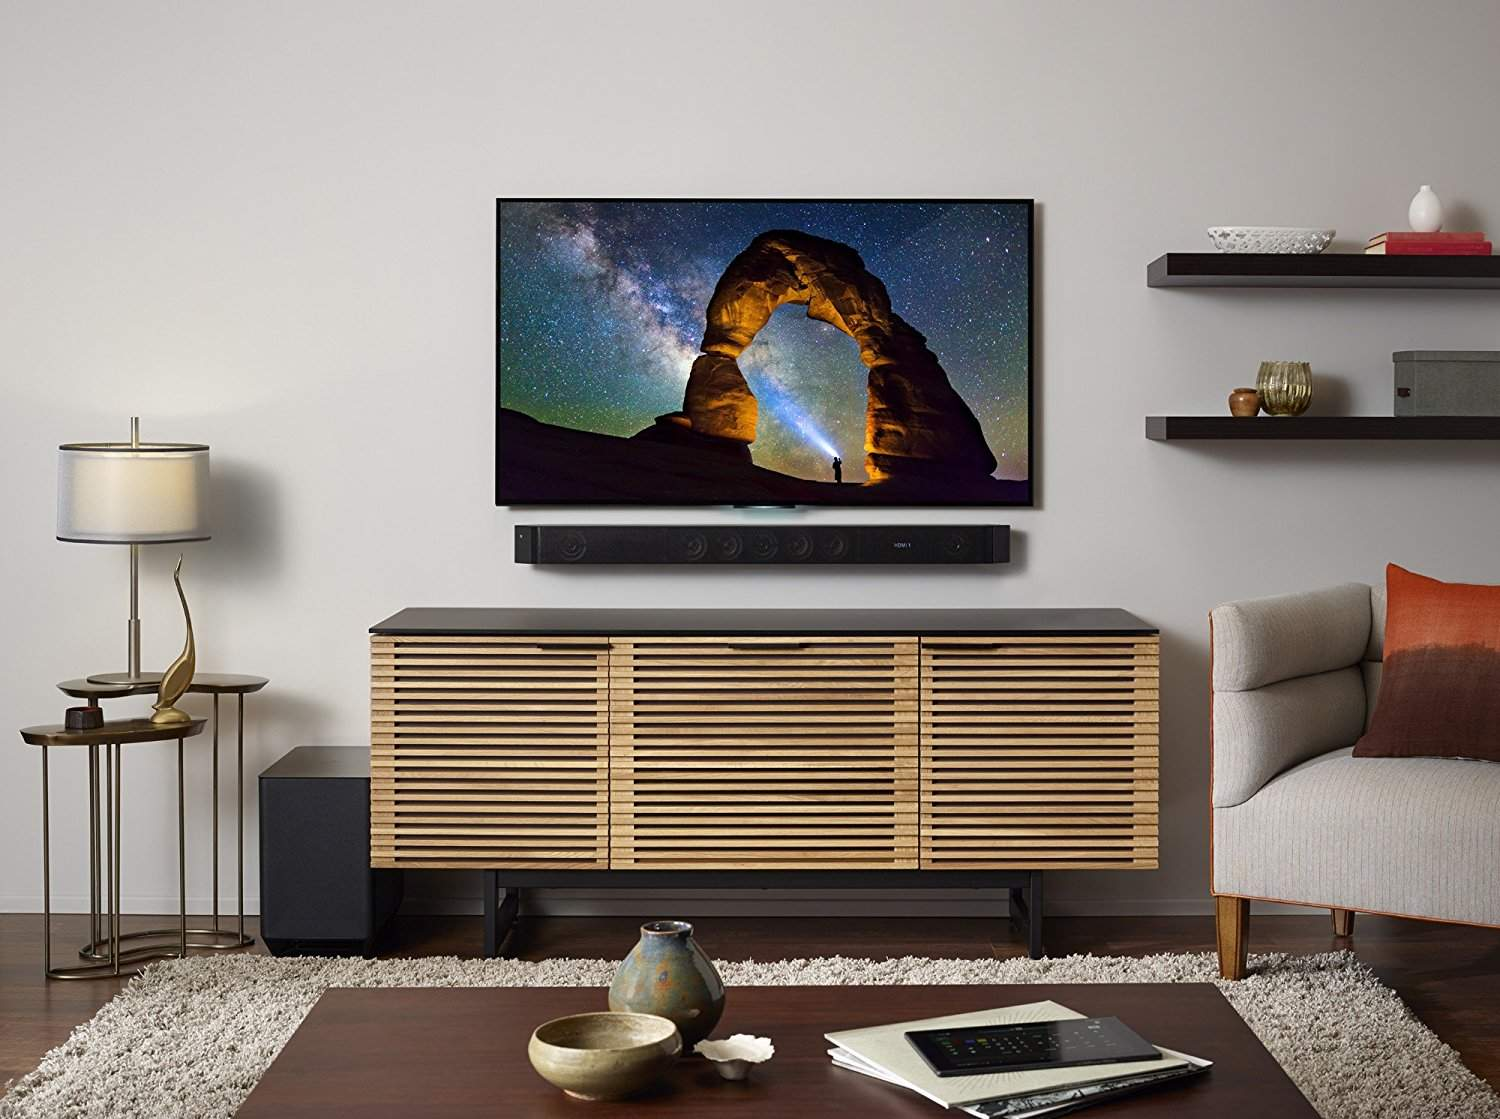 The Best Soundbars Of 2018 From High End To Great Value